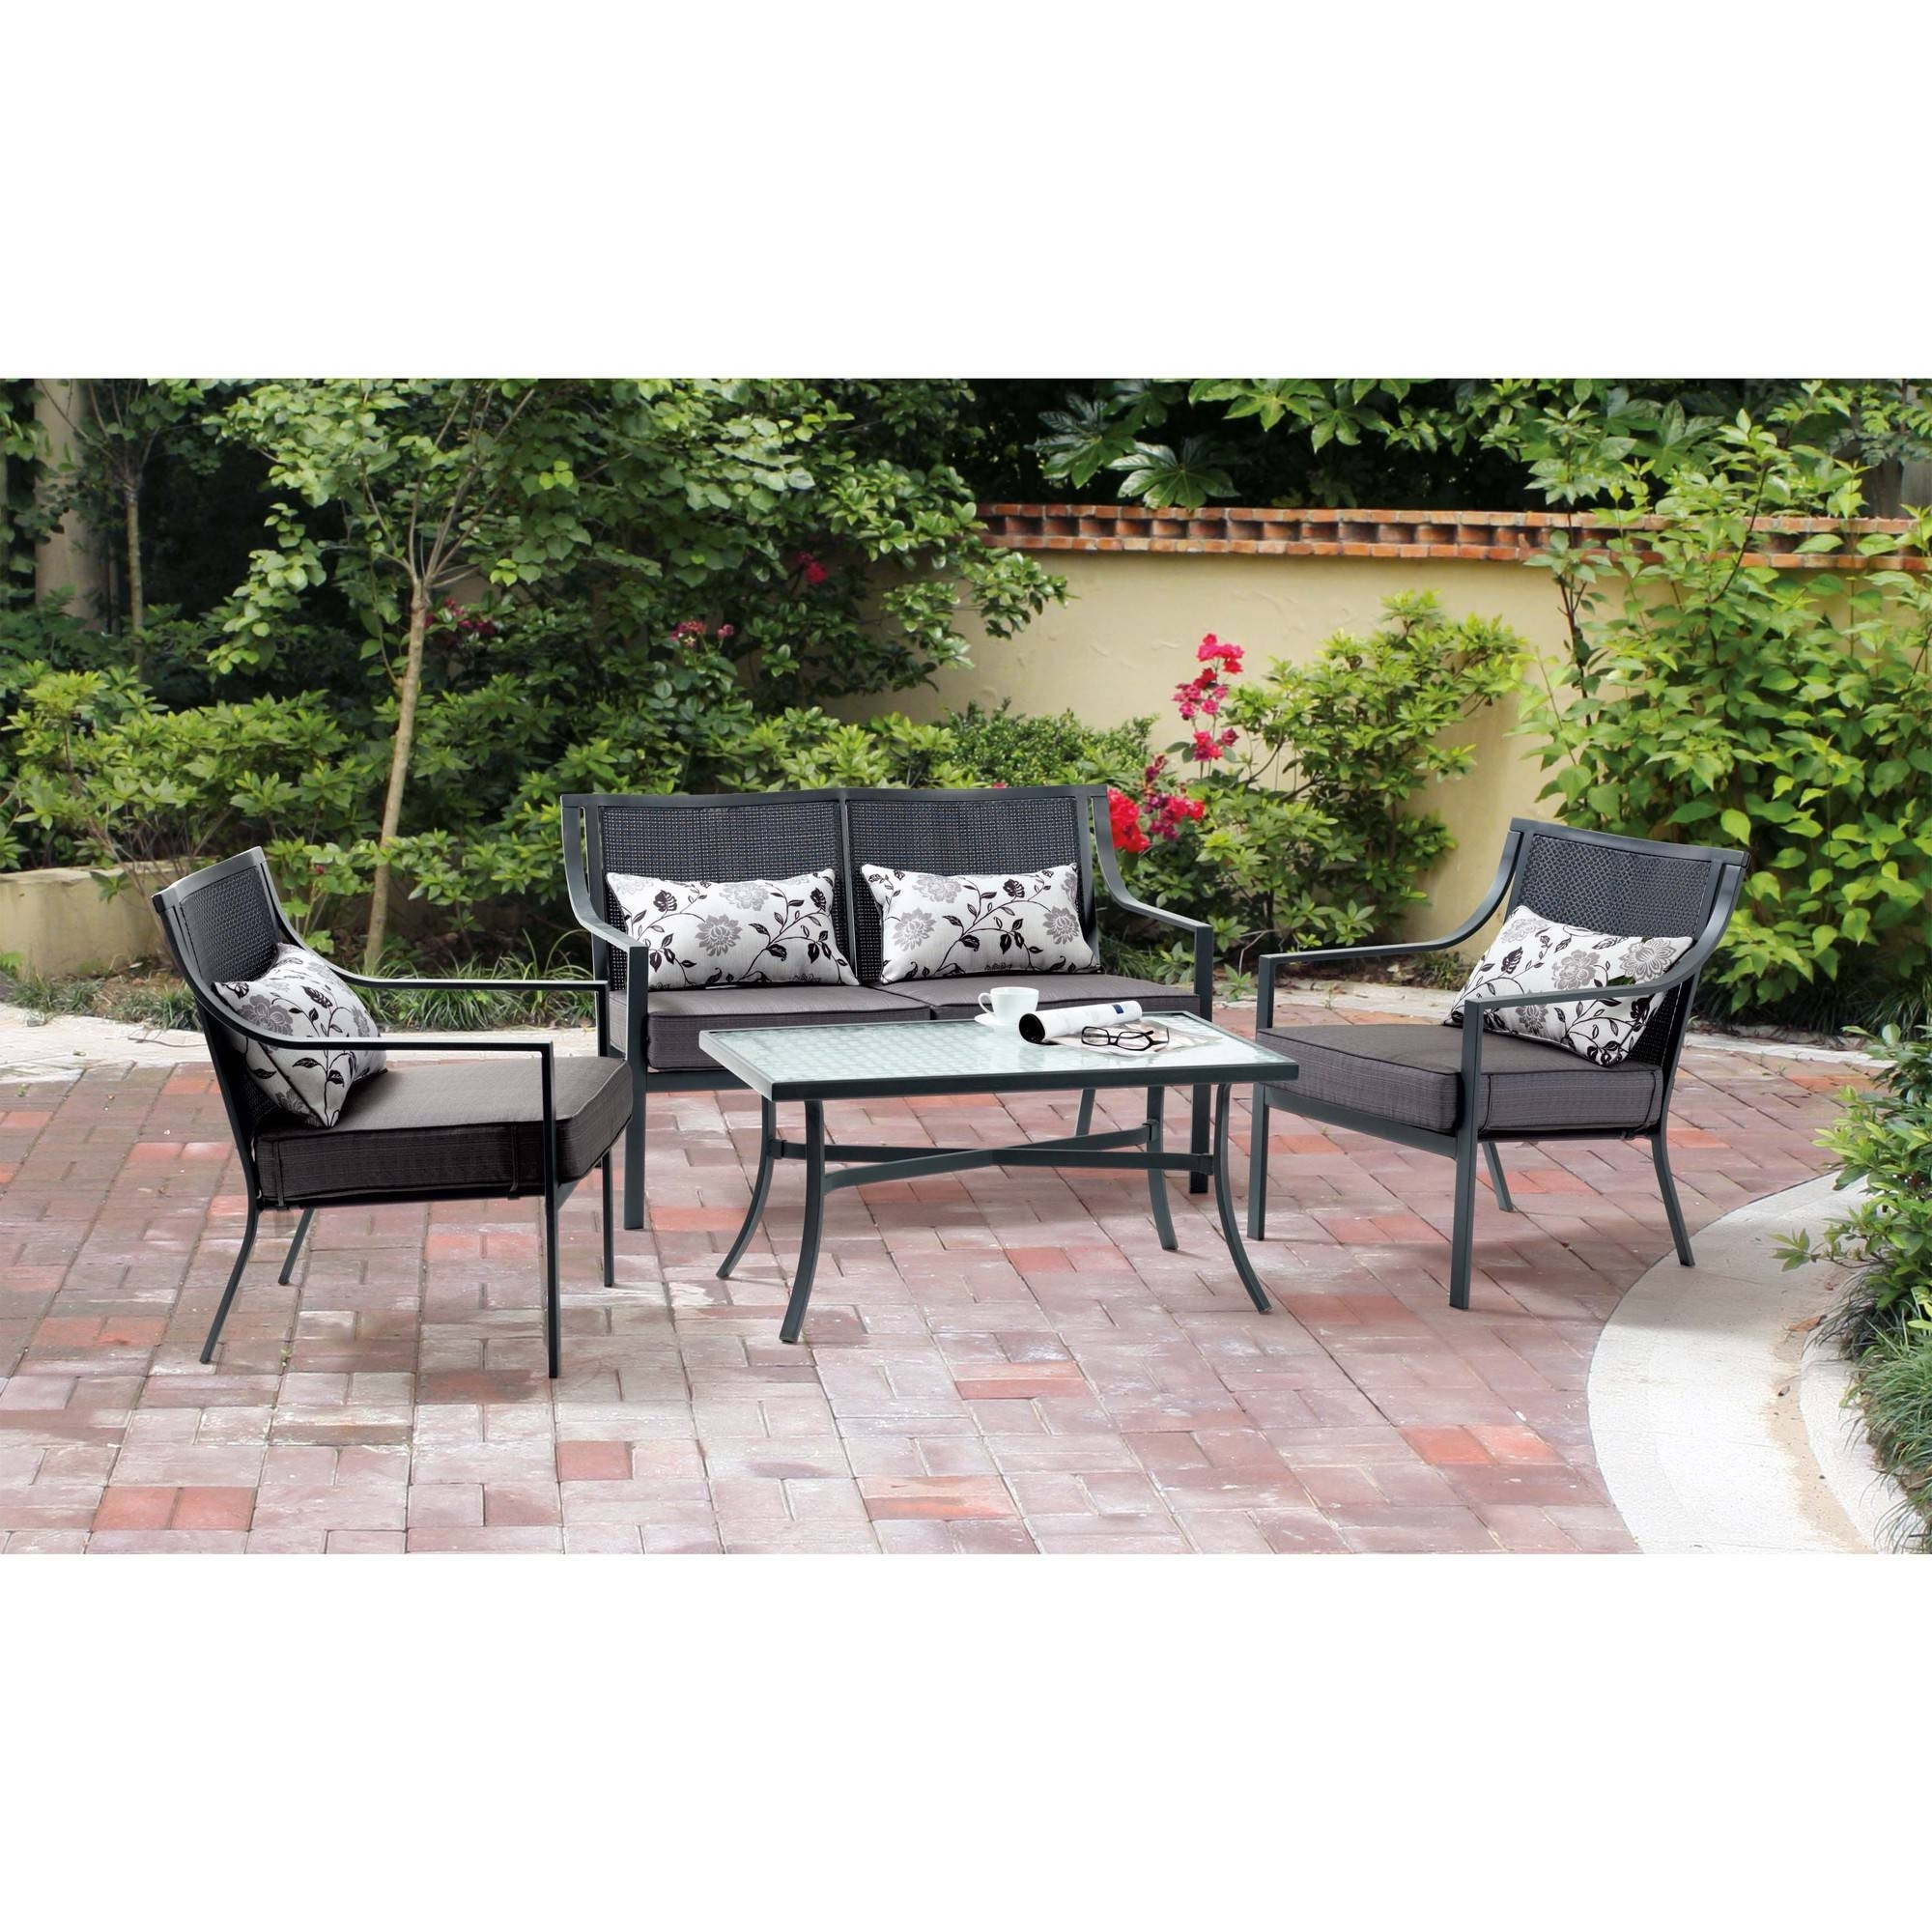 Popular Patio Conversation Sets Without Cushions With Regard To Patio Conversation Sets Without Cushions – Patio Ideas (View 2 of 20)